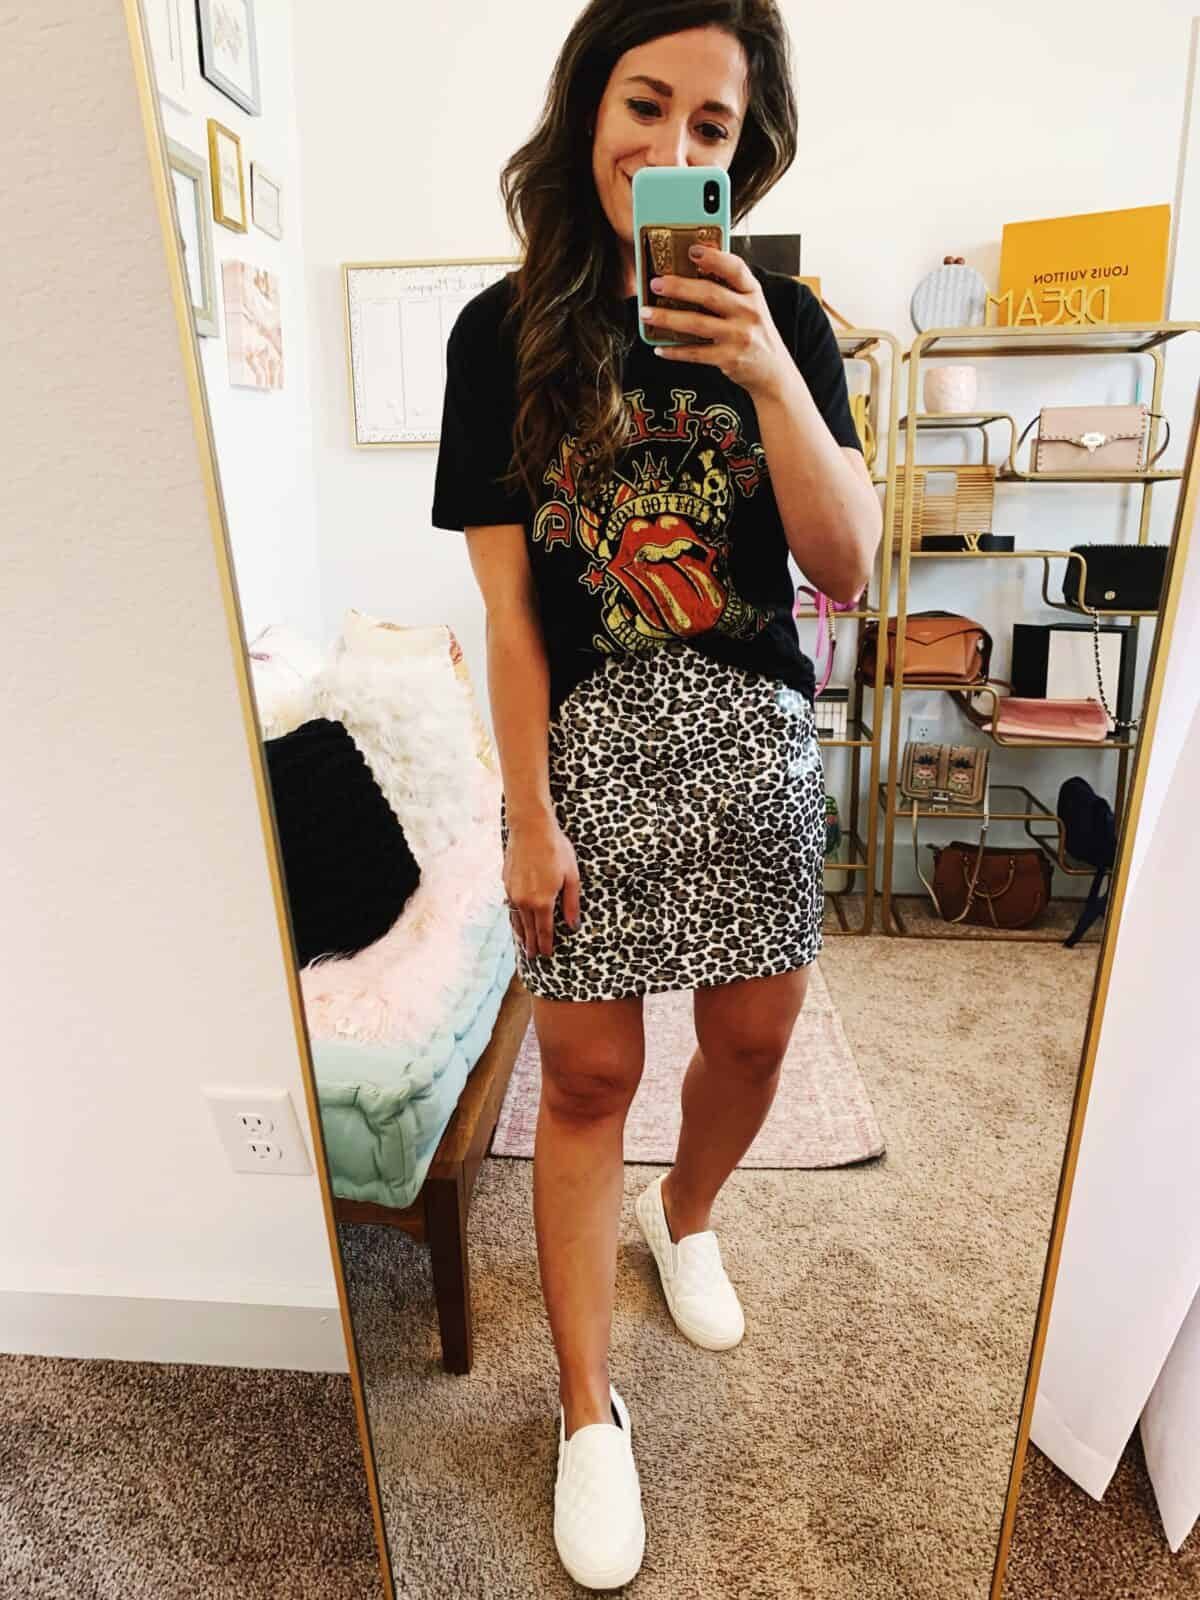 graphic tee styled with a mini skirt for Fall